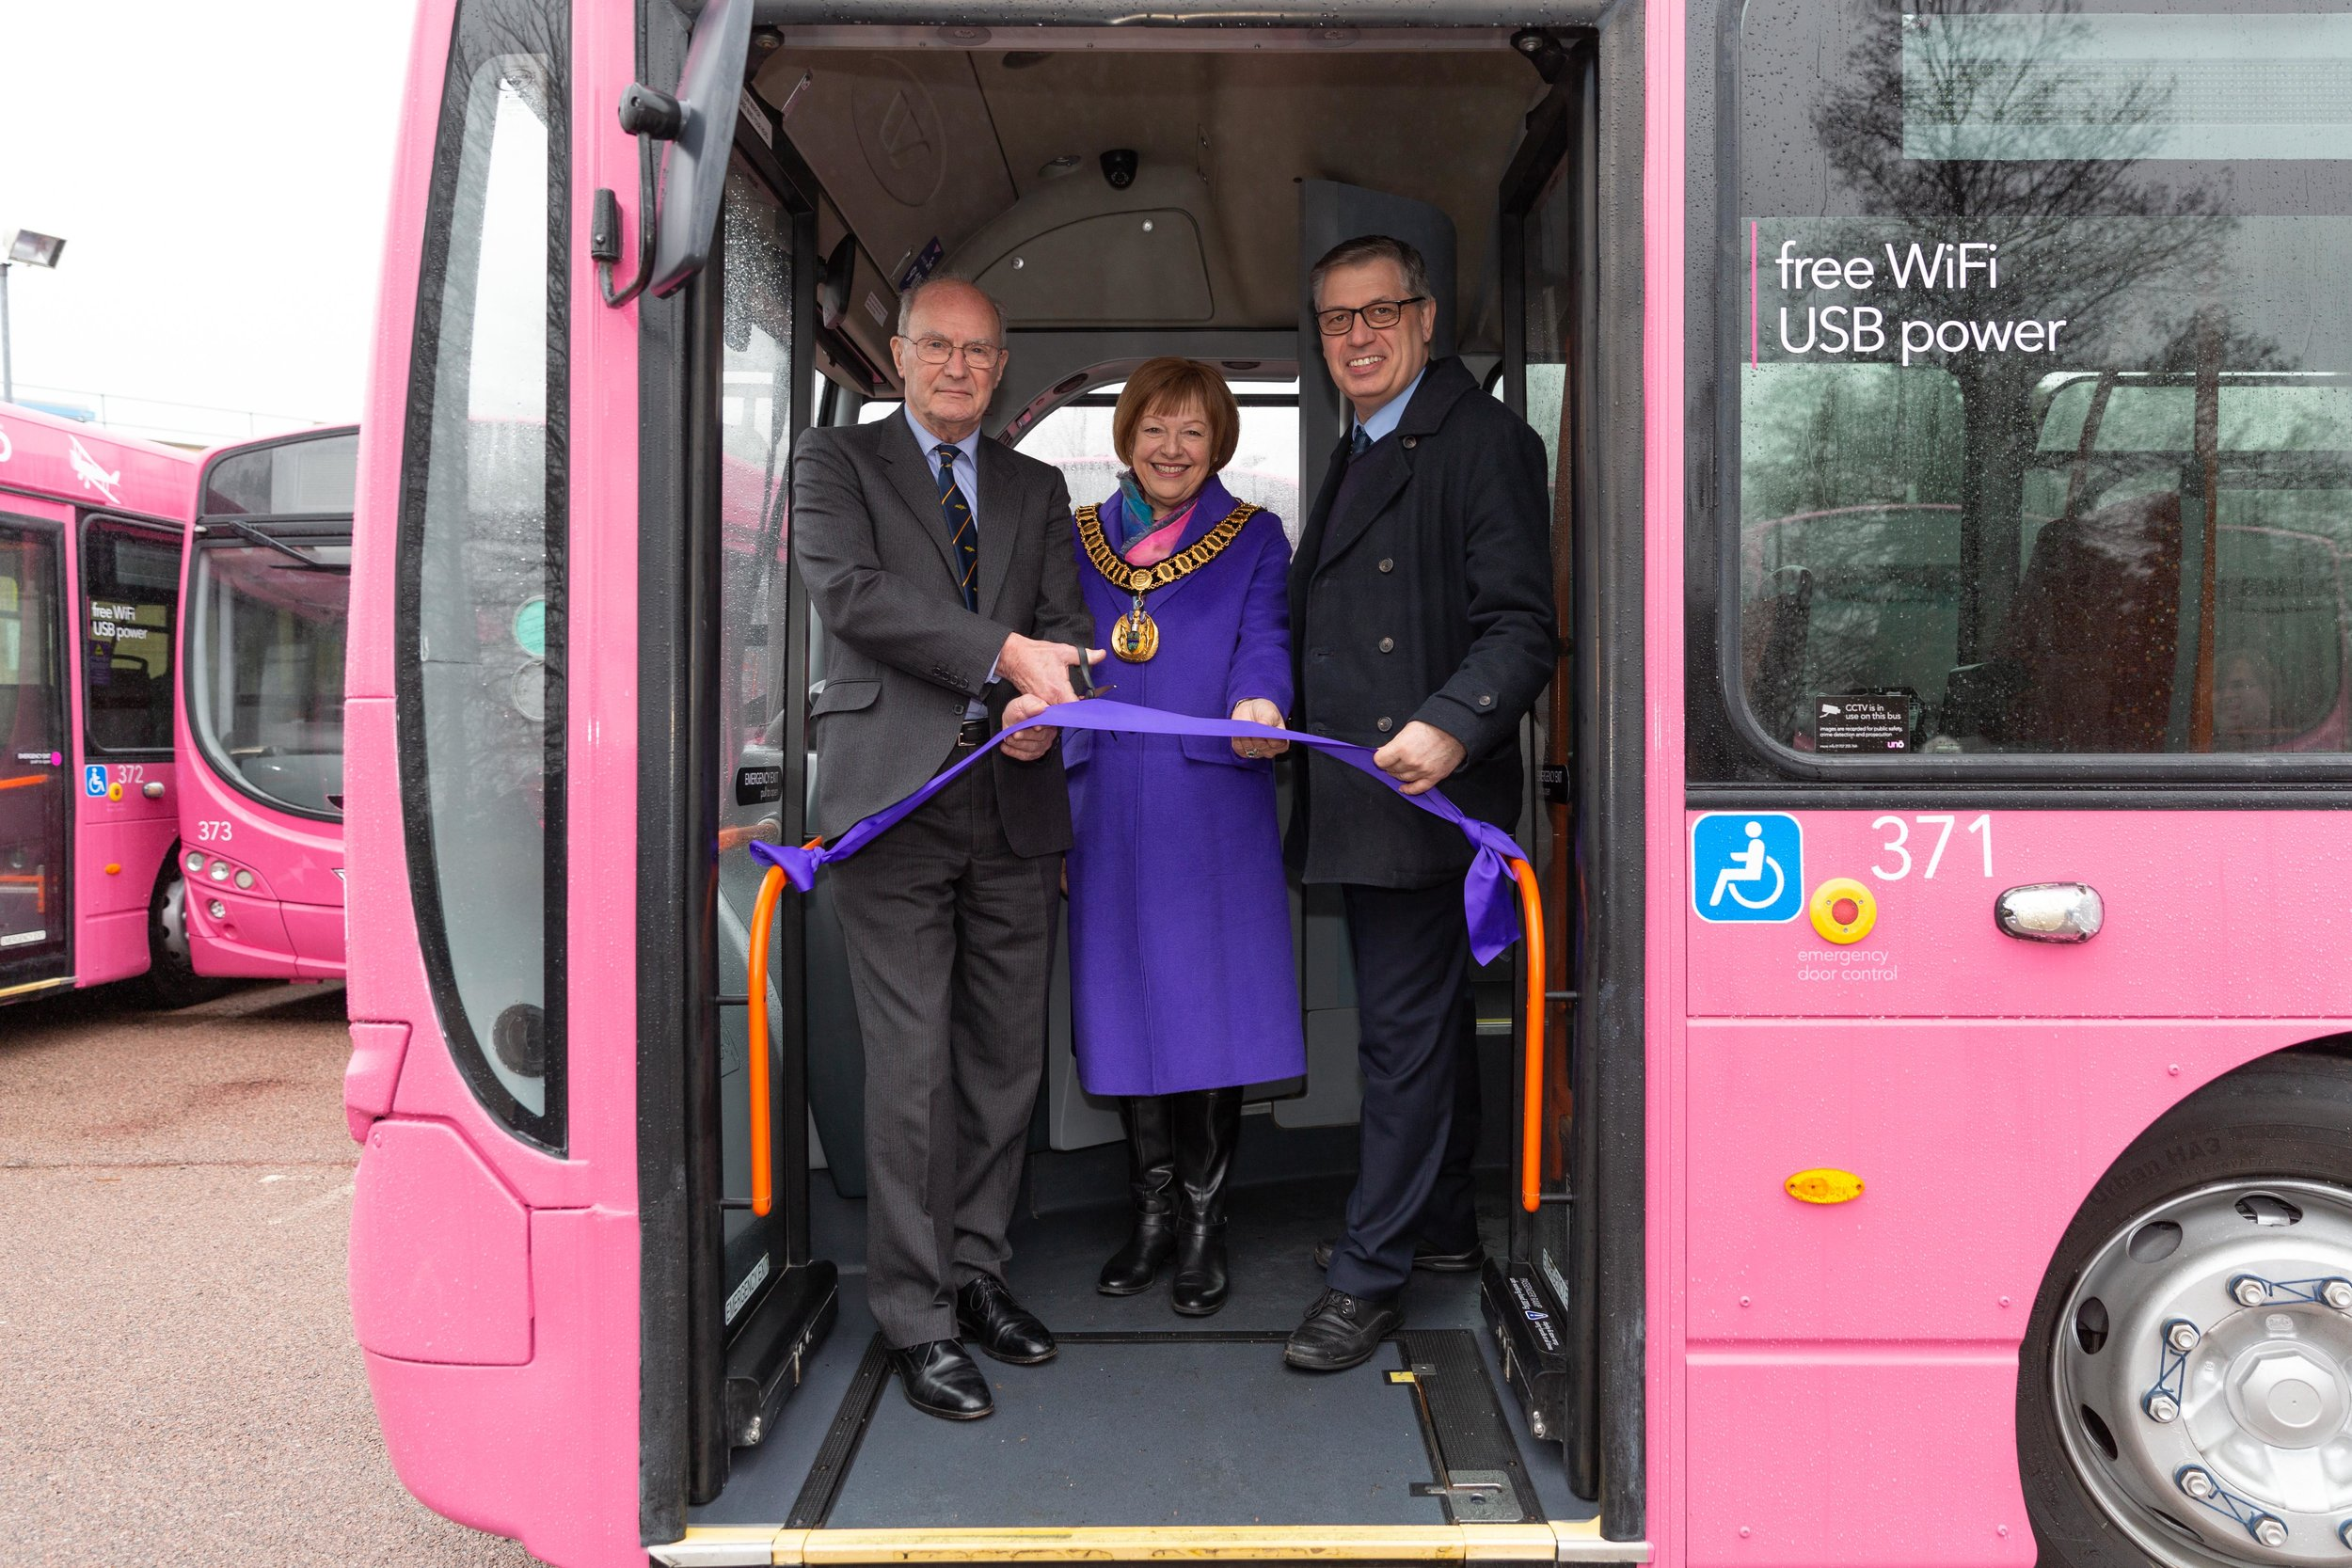 From left to right: John Lumsden Marion Wilberforce's nephew, The Mayor of the Borough of Welwyn Hatfield Cllr Barbara Fitzsimons and Jim Thorpe MD of Uno Buses